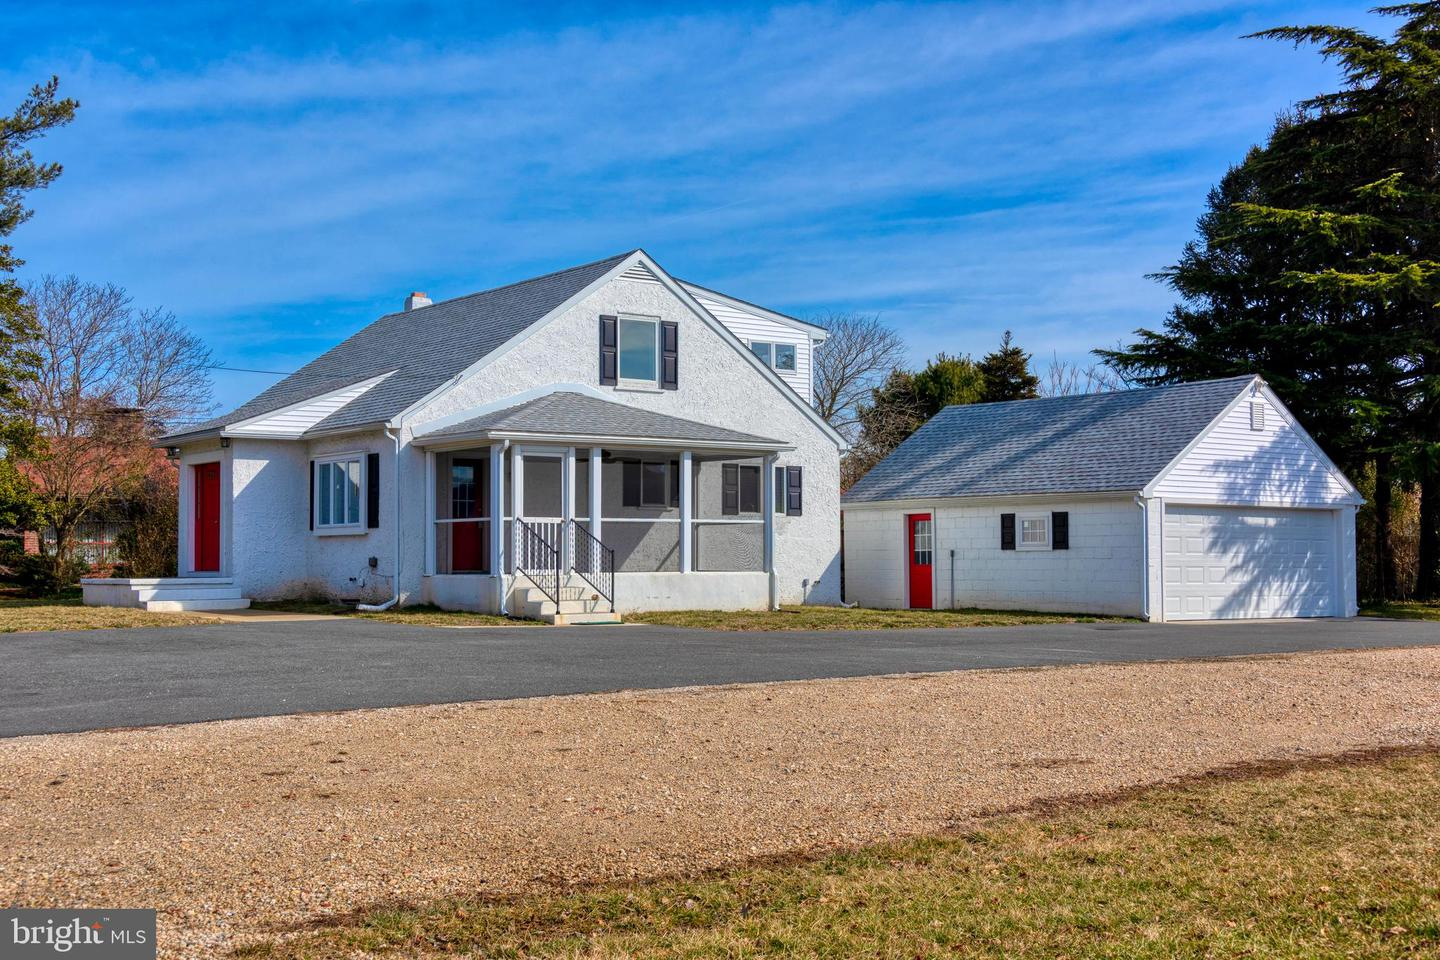 DESU128680-301394020854-2019-02-06-12-26-09 1204 Savannah Rd | Lewes, DE Real Estate For Sale | MLS# Desu128680  - Coldwell Banker Resort Realty